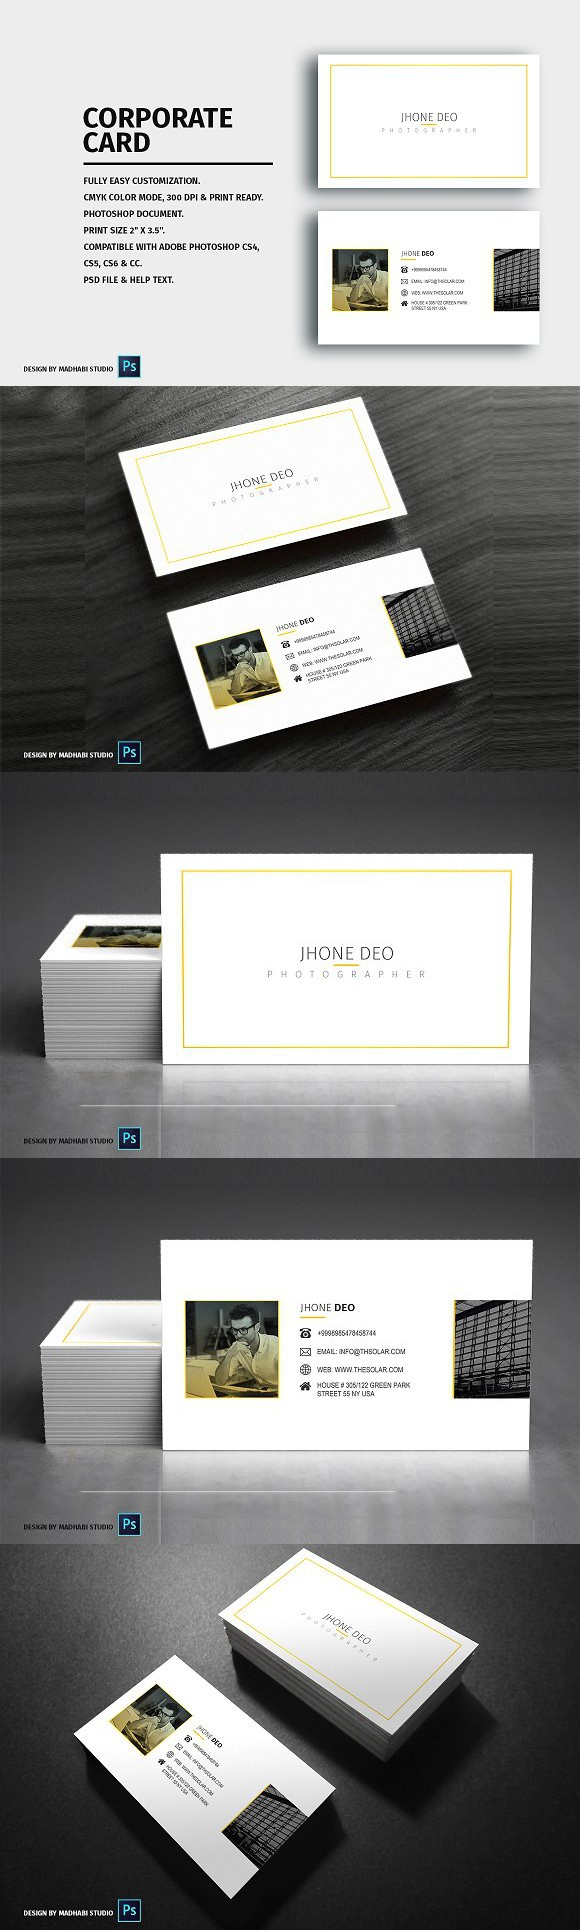 Minimal business card creative business card templates creative minimal business card creative business card templates reheart Gallery